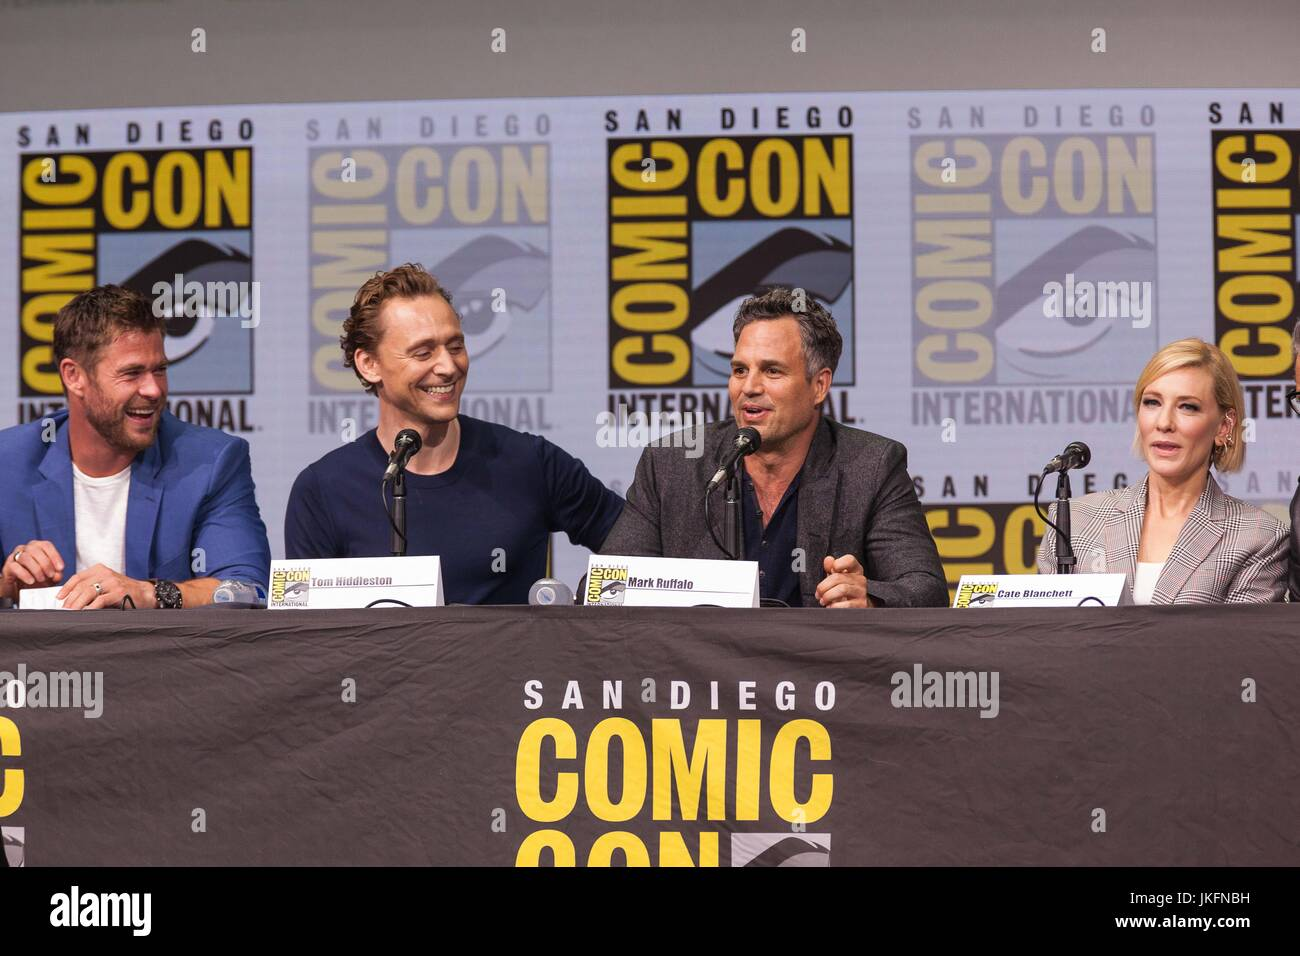 San Diego, US. 22nd July, 2017. Day three in Hall H. Marvel Studios President Kevin Feige giving Hall H fans a look - Stock Image